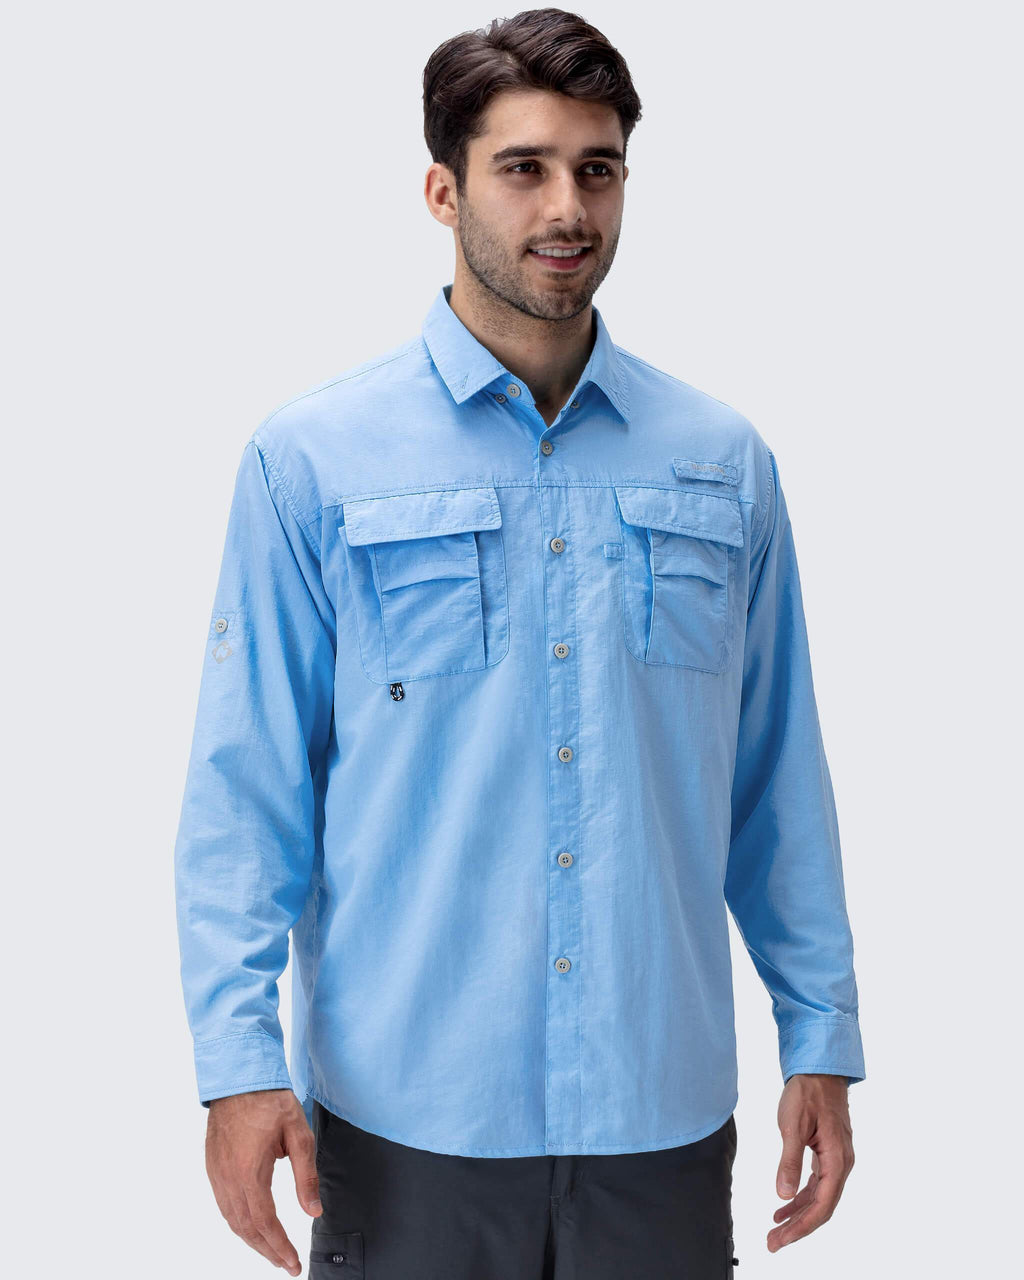 UPF 50+ Outdoor Fishing Shirt-Naviskin